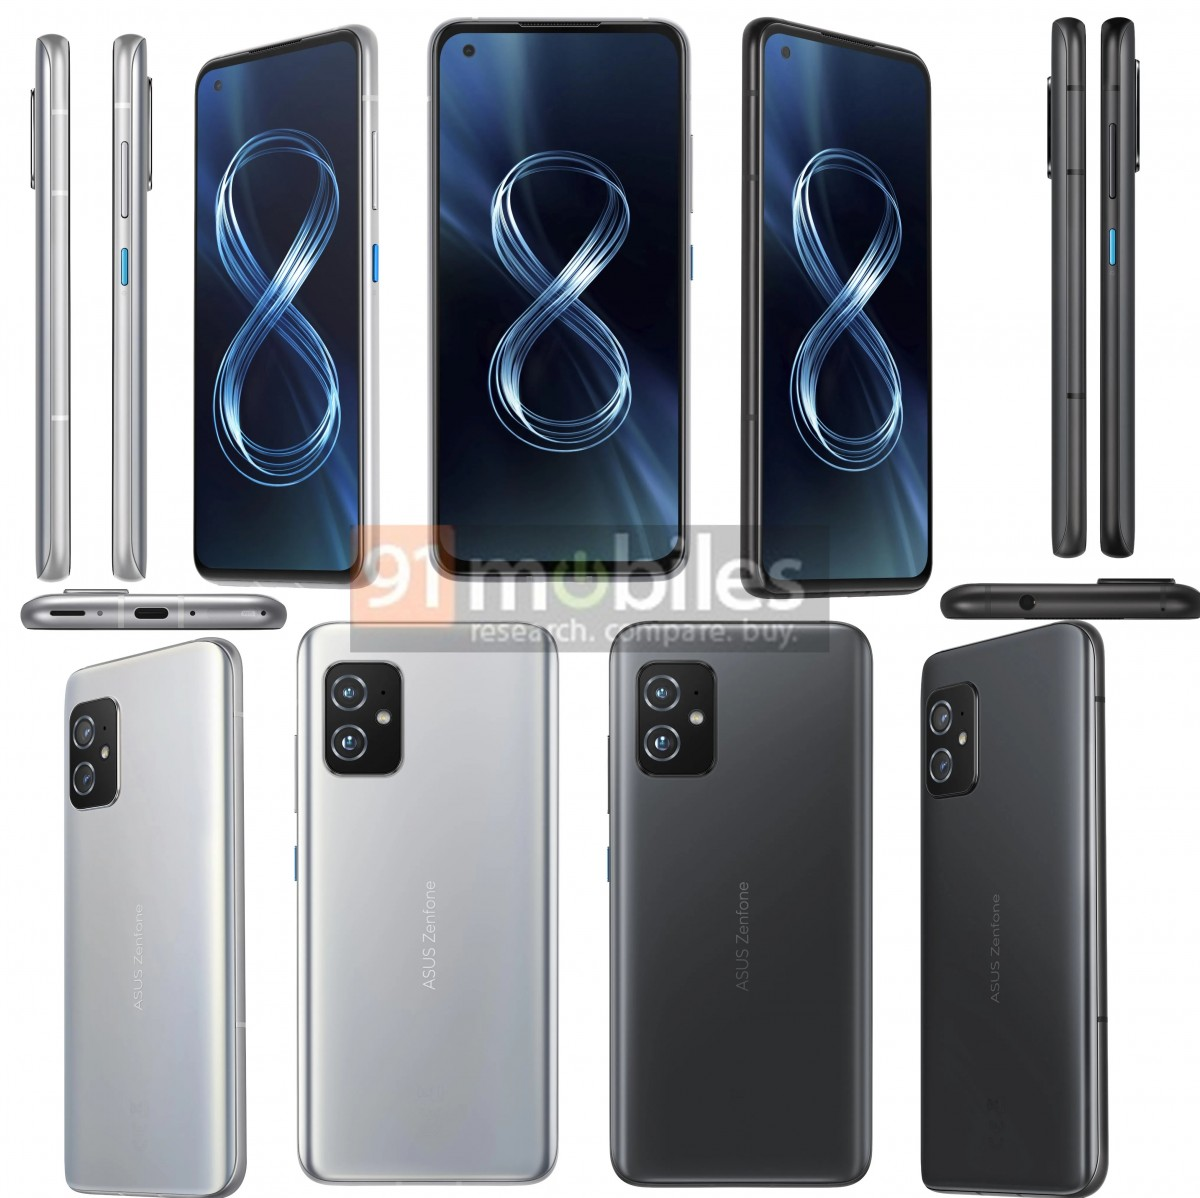 Asus Zenfone 8 specs surface in full, detailing all of the hardware